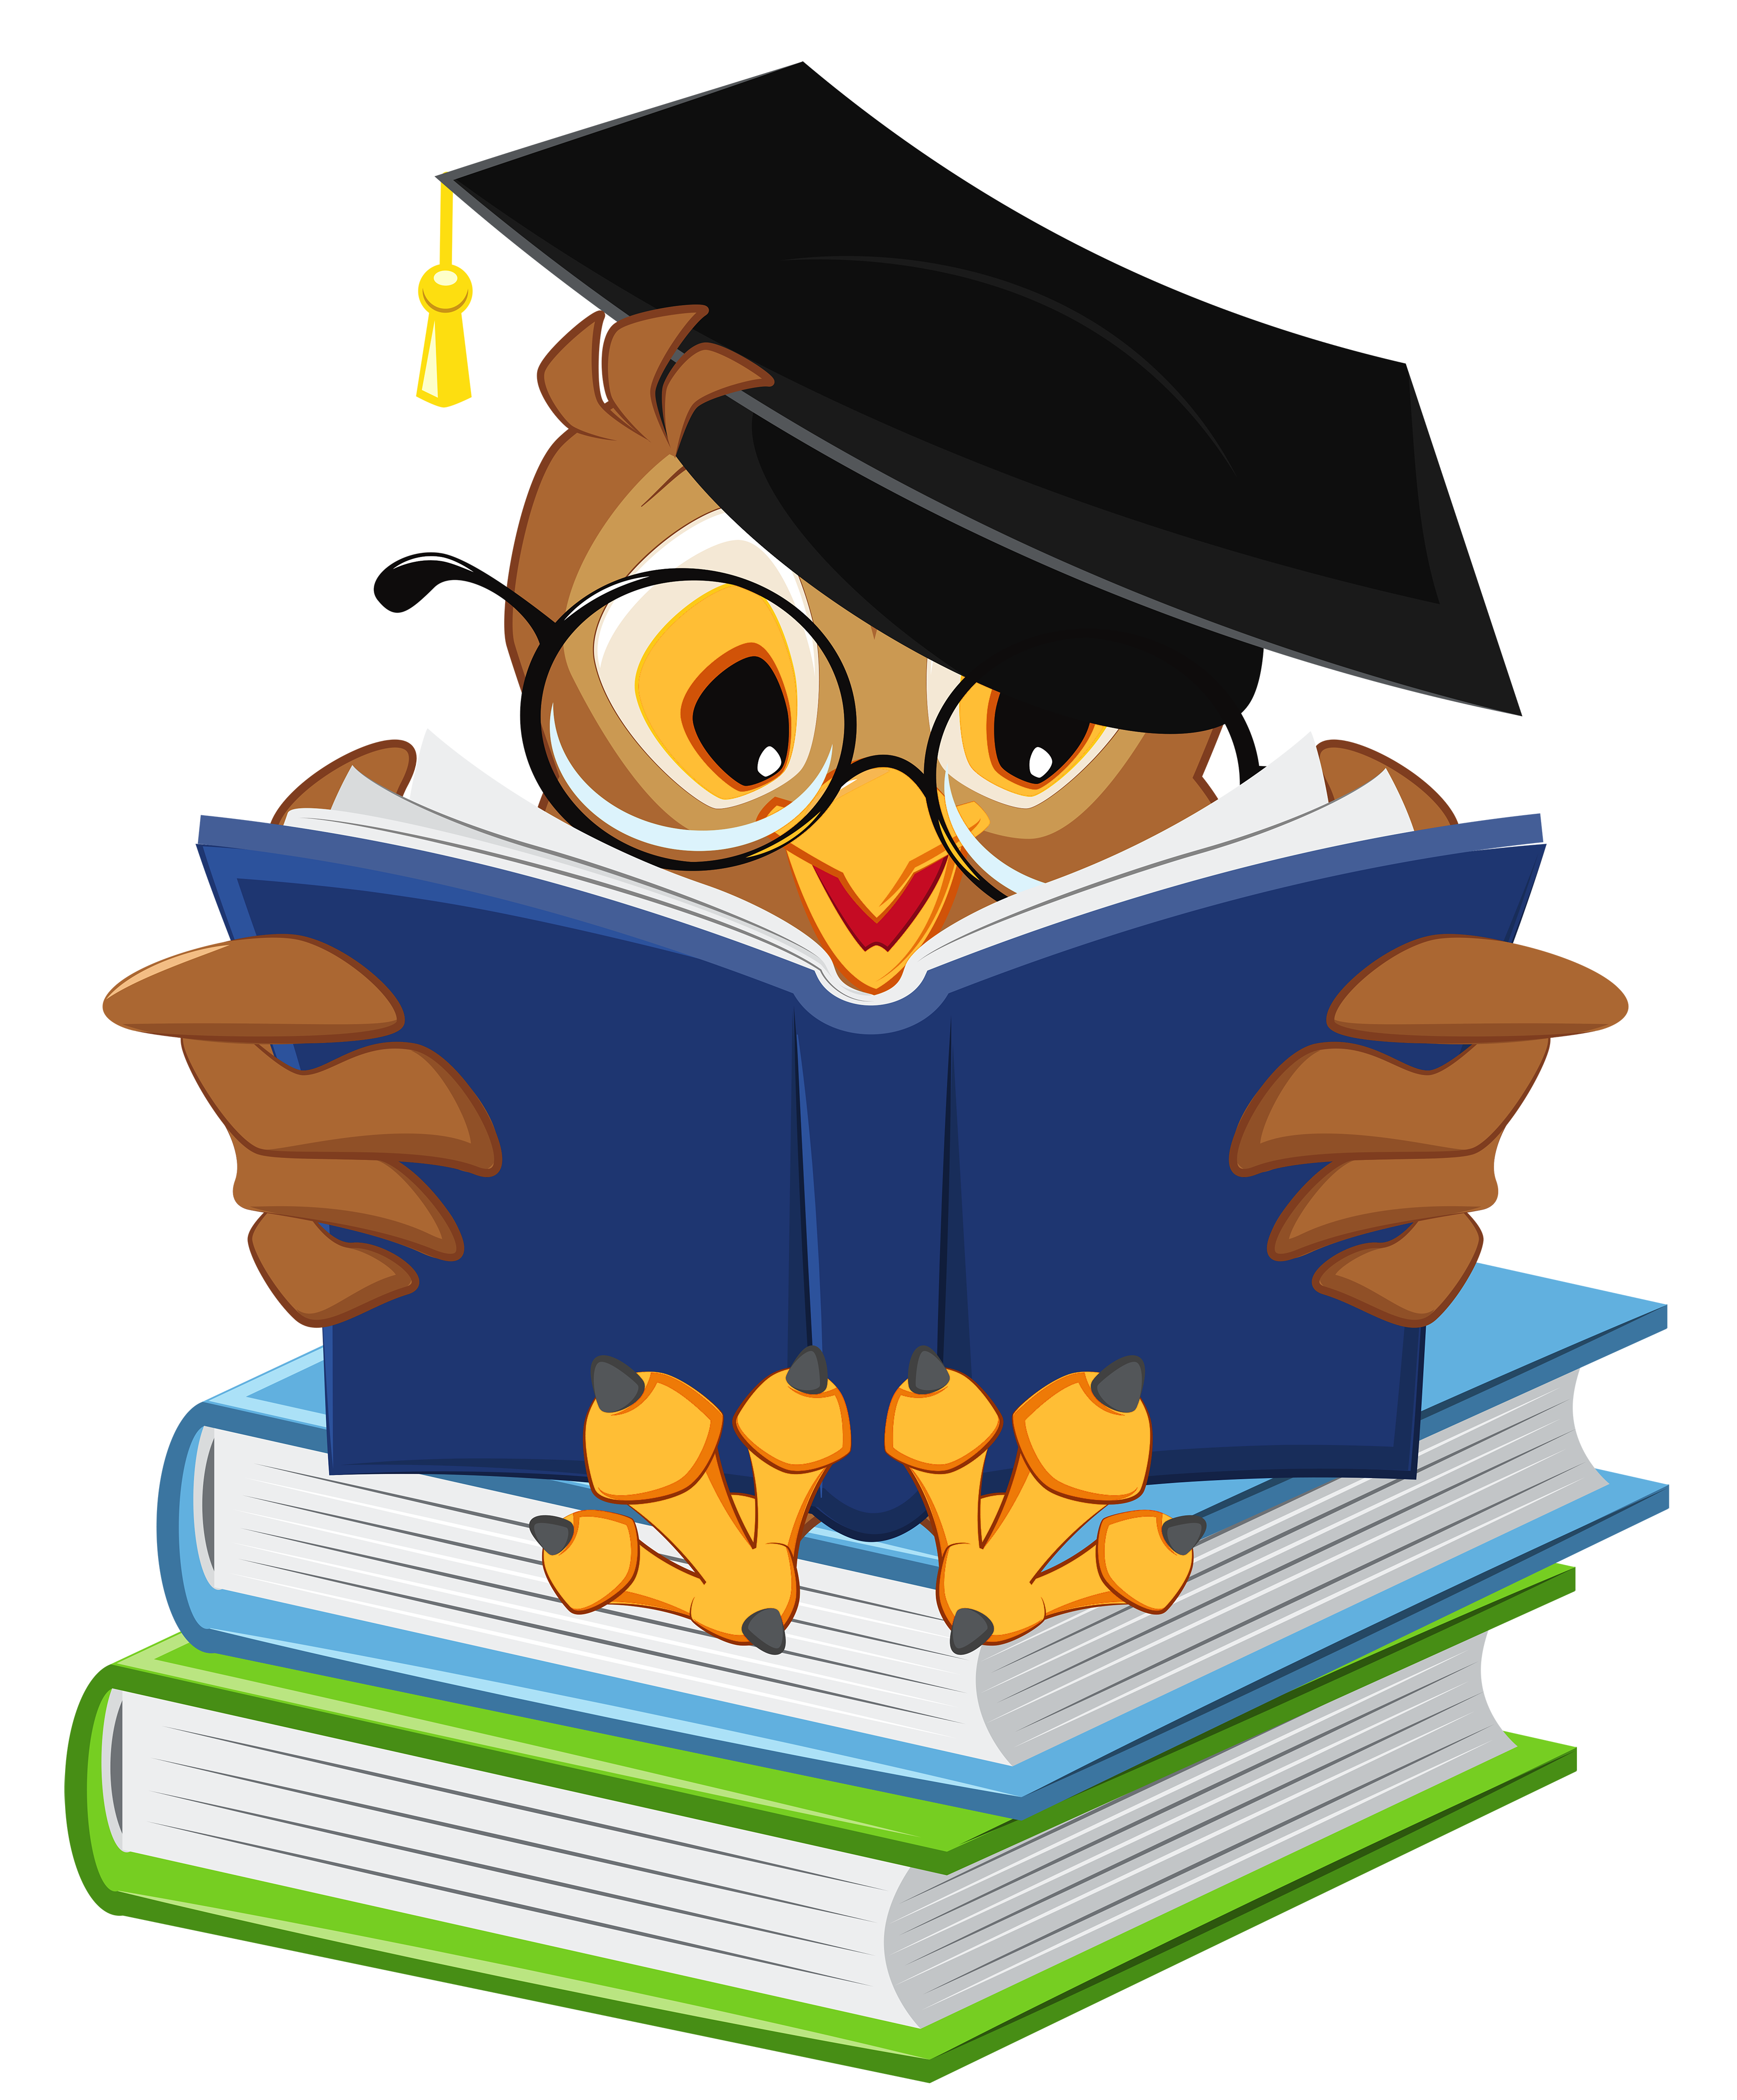 Book spine cartoon png. Owl with school books